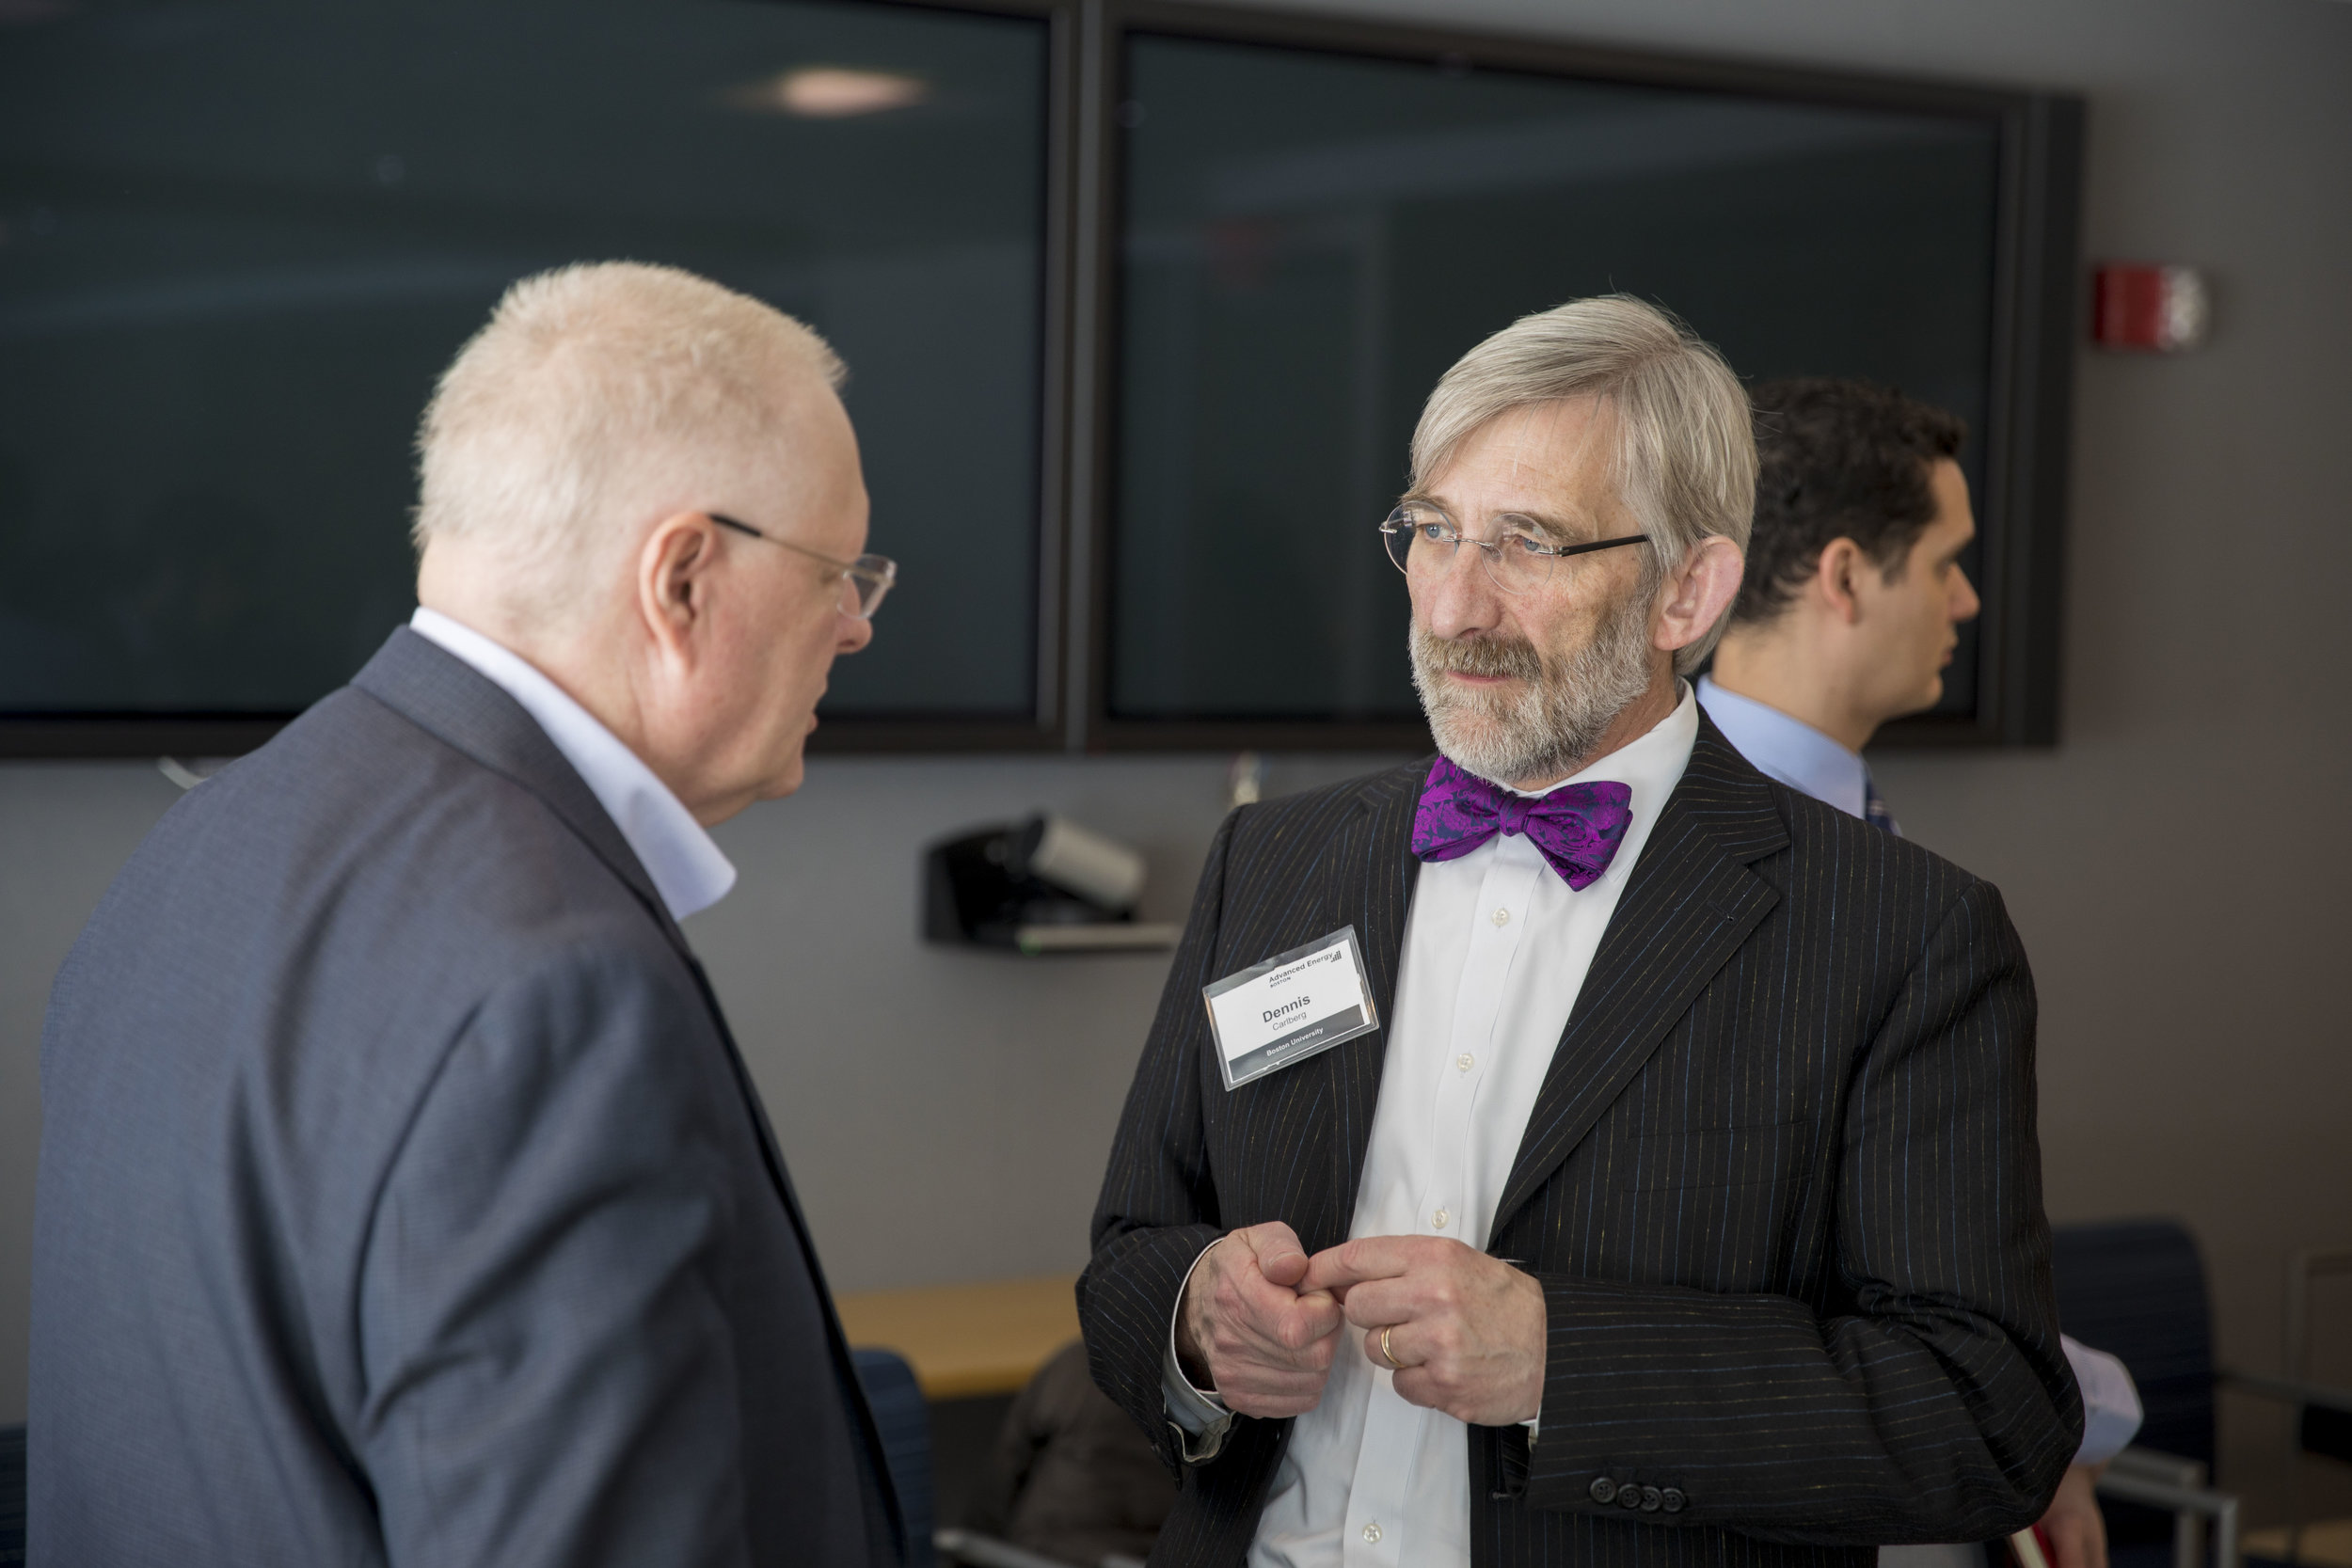 Dennis Carlberg and Ken Packard, Director of Utilities at MIT, converse during the break